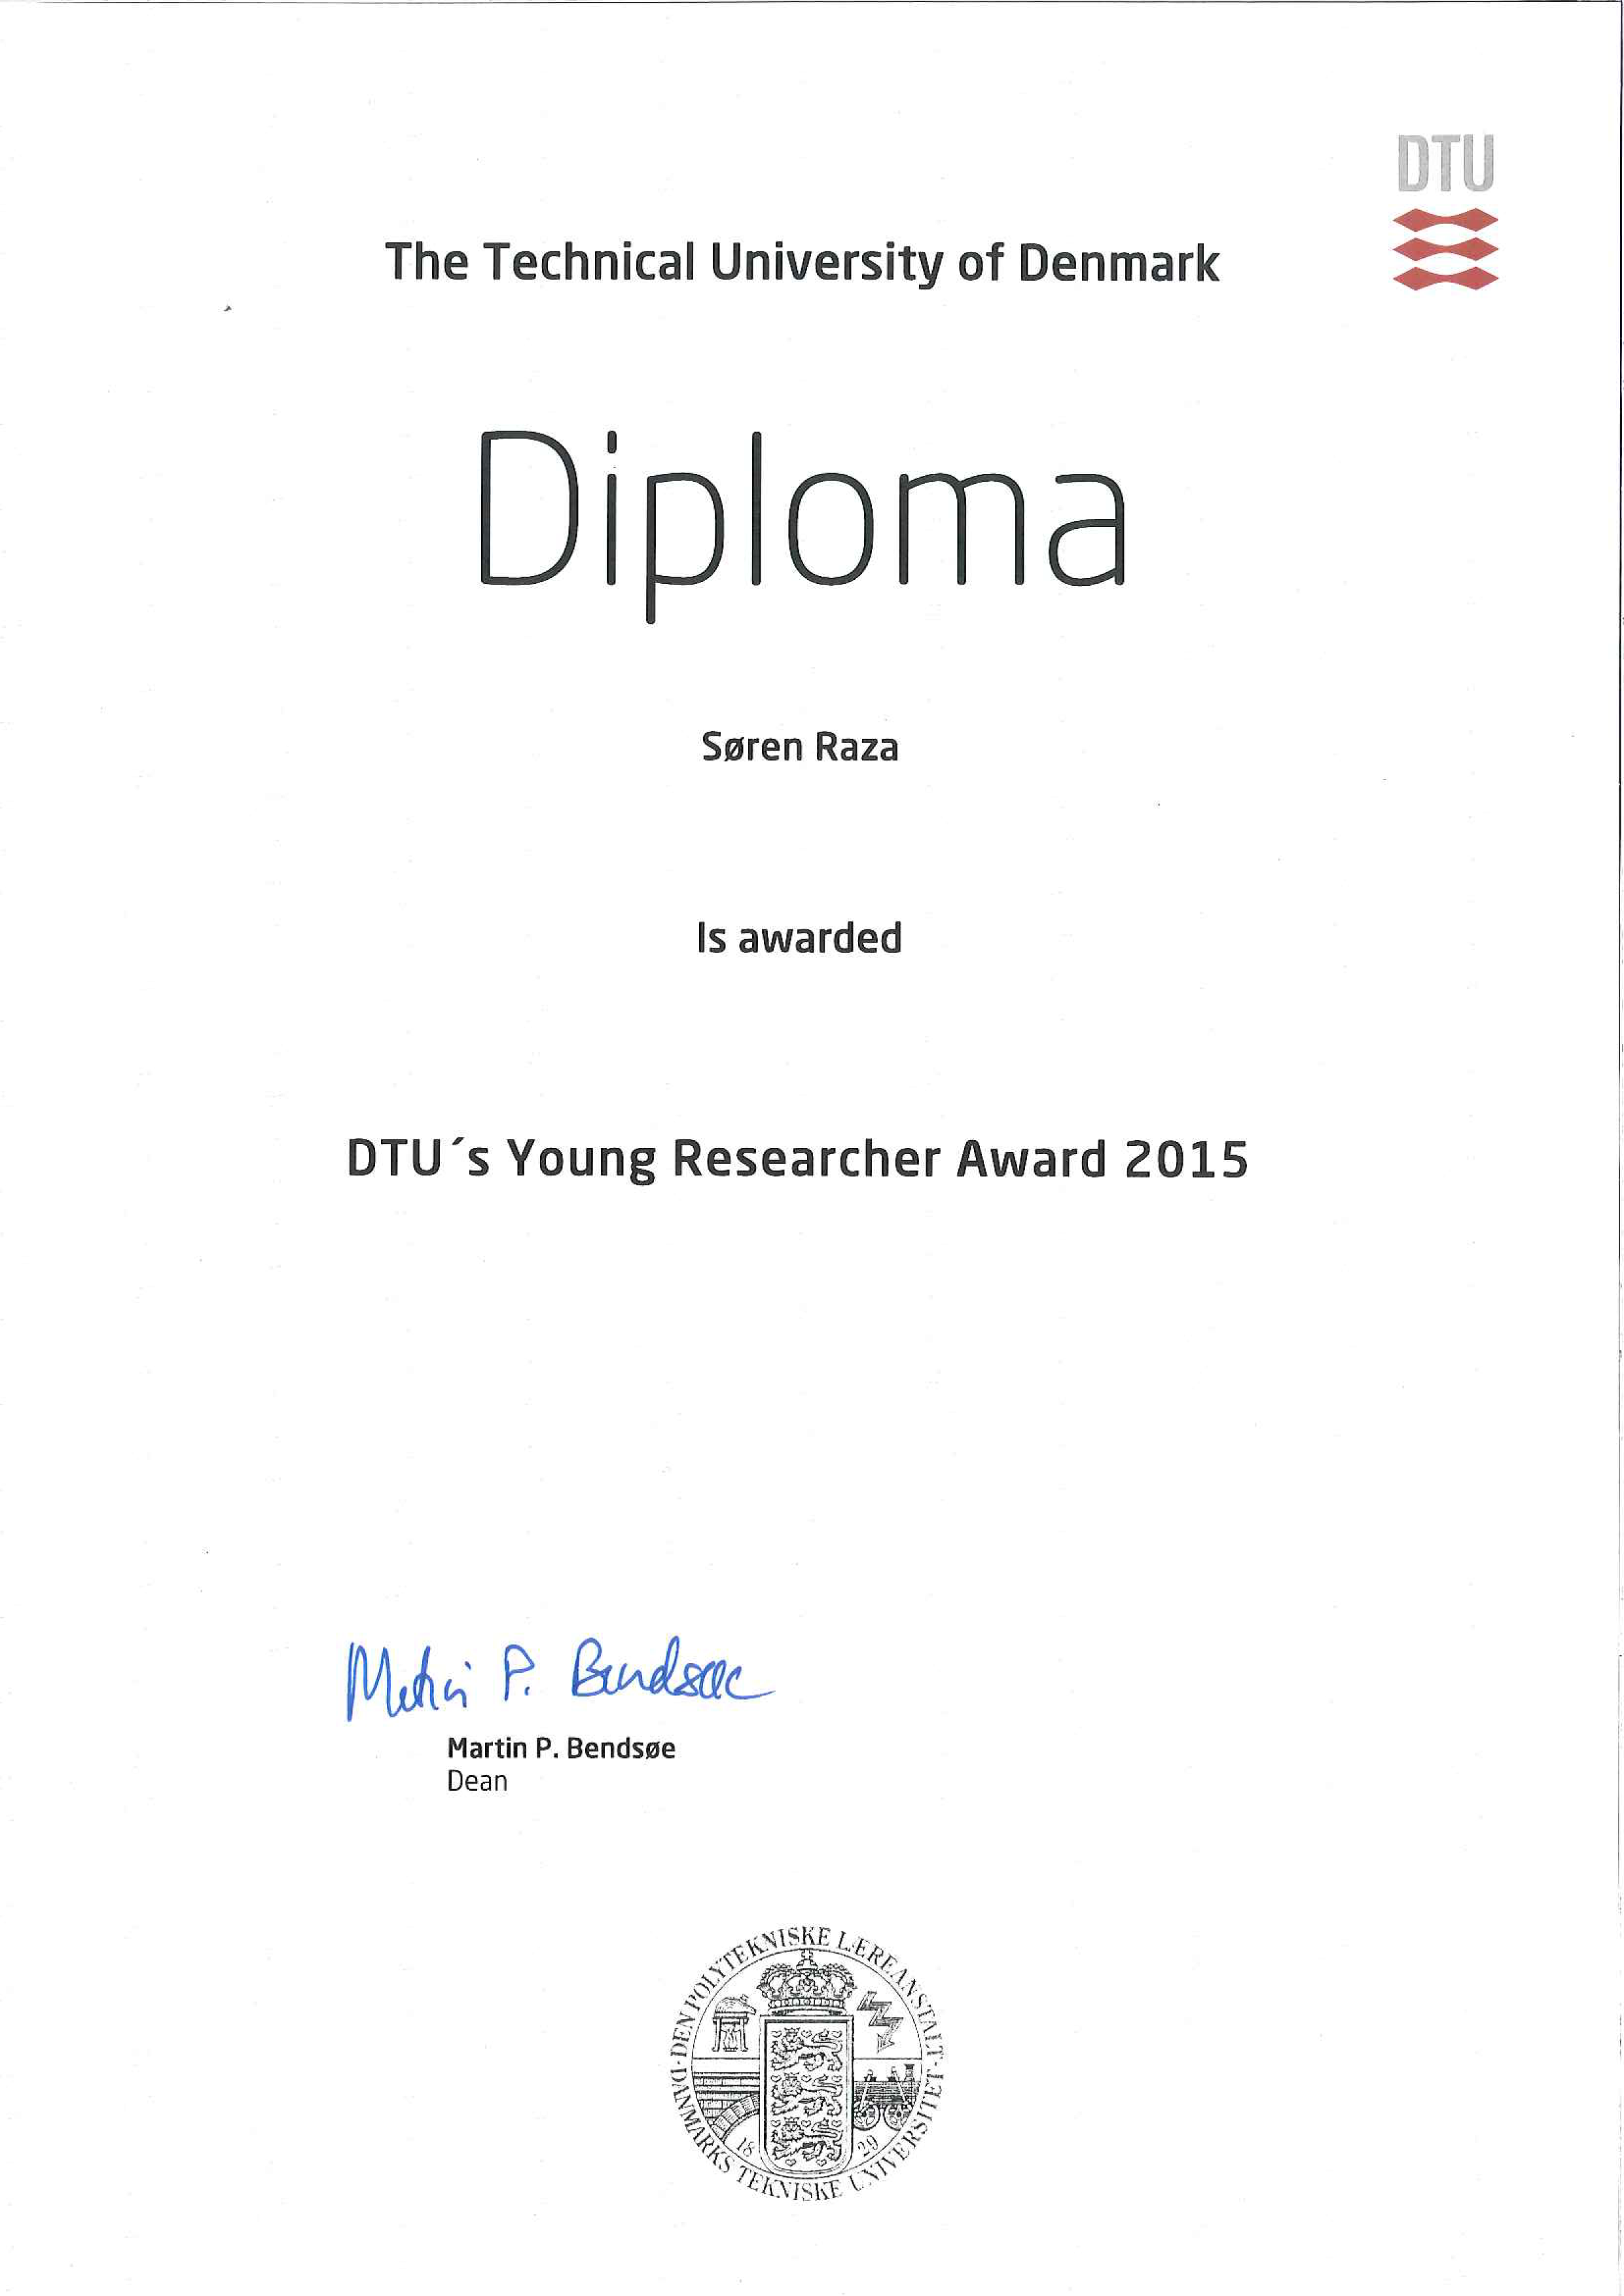 Diploma of the Young Researcher Award from DTU.